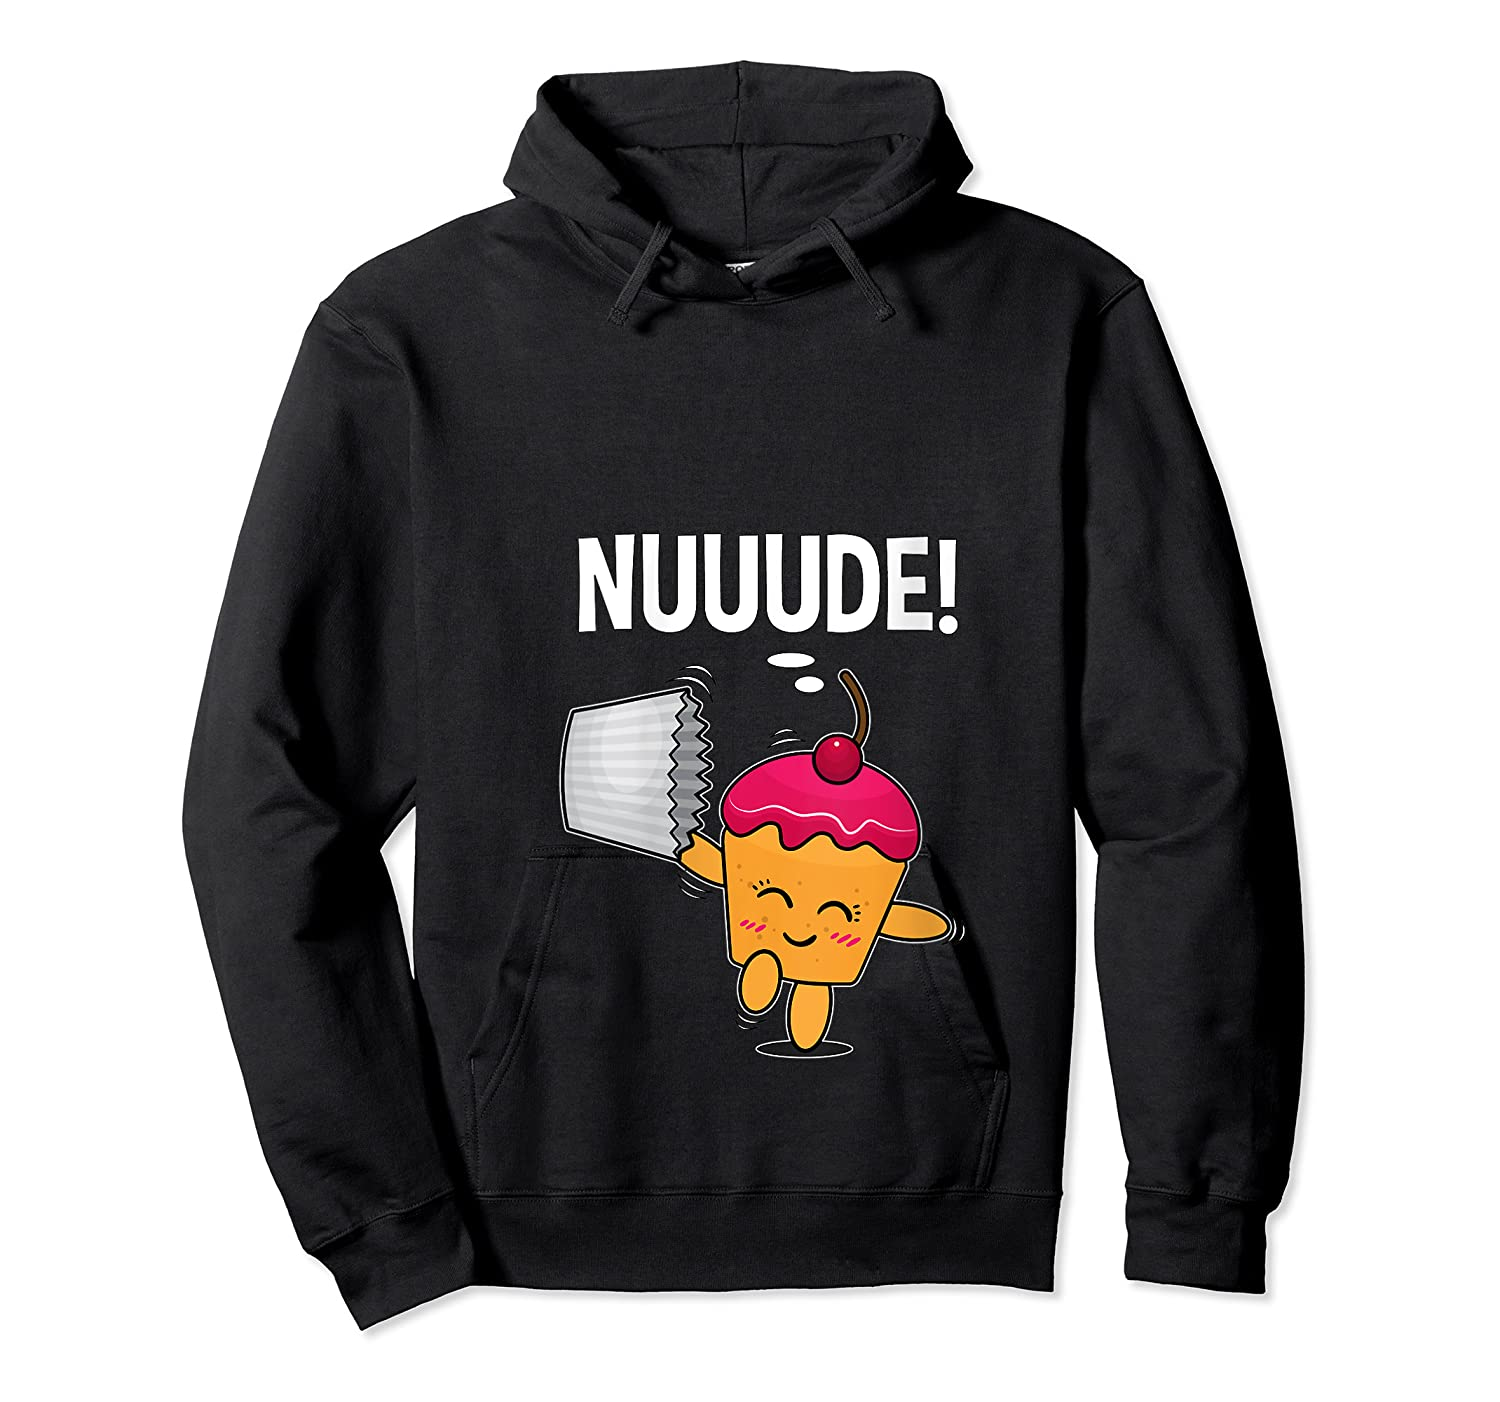 What Do You Call A Cupcake Without It S Wrapper Nude T Shirt Unisex Pullover Hoodie